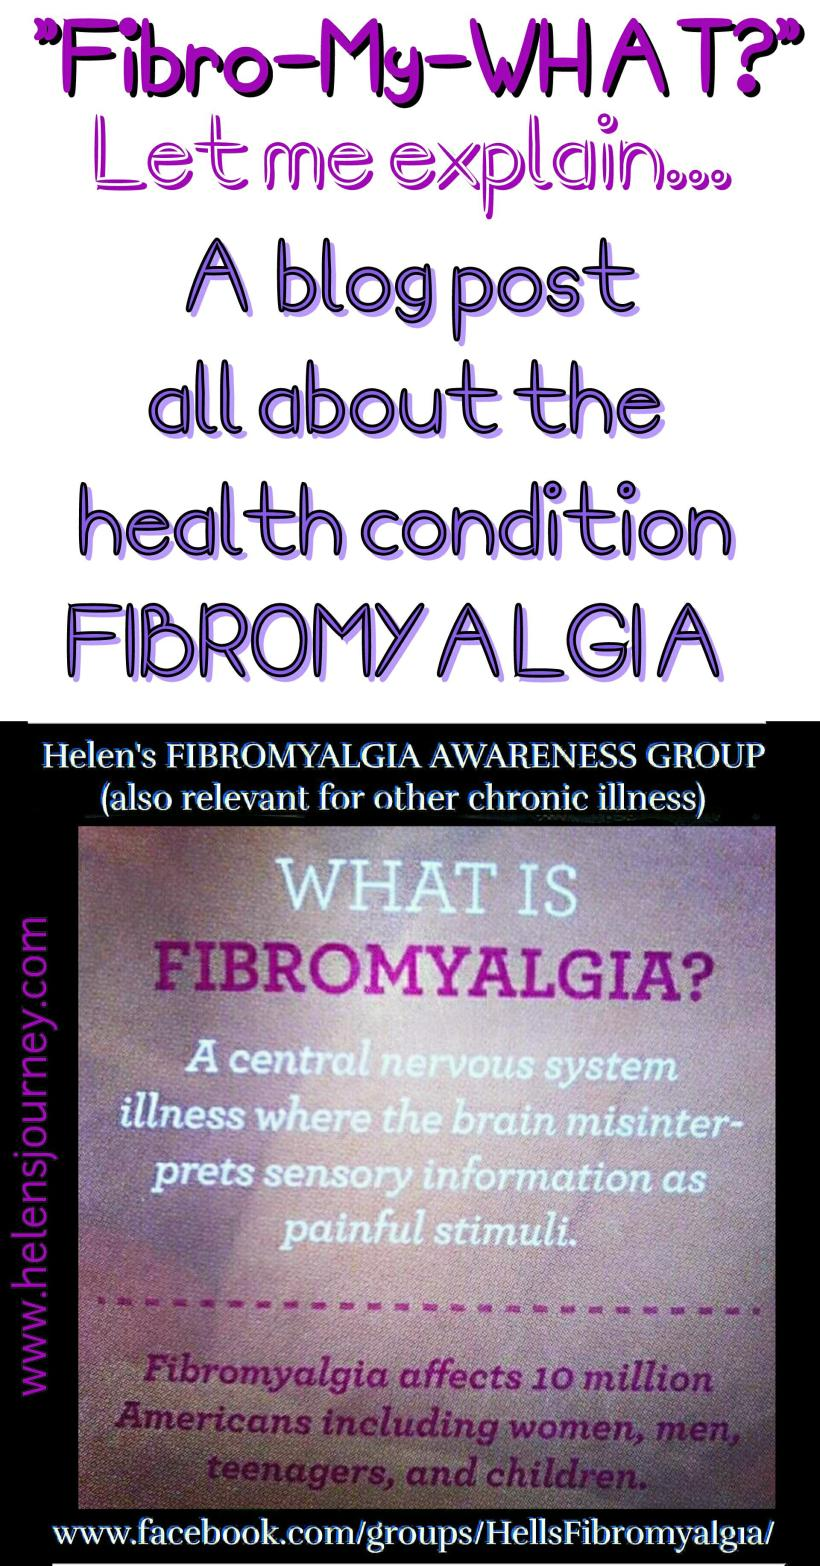 Fibro-My-What a blog post all about the health condition fibromyalgia by facebook chronic illness support group leader Helen's Journey